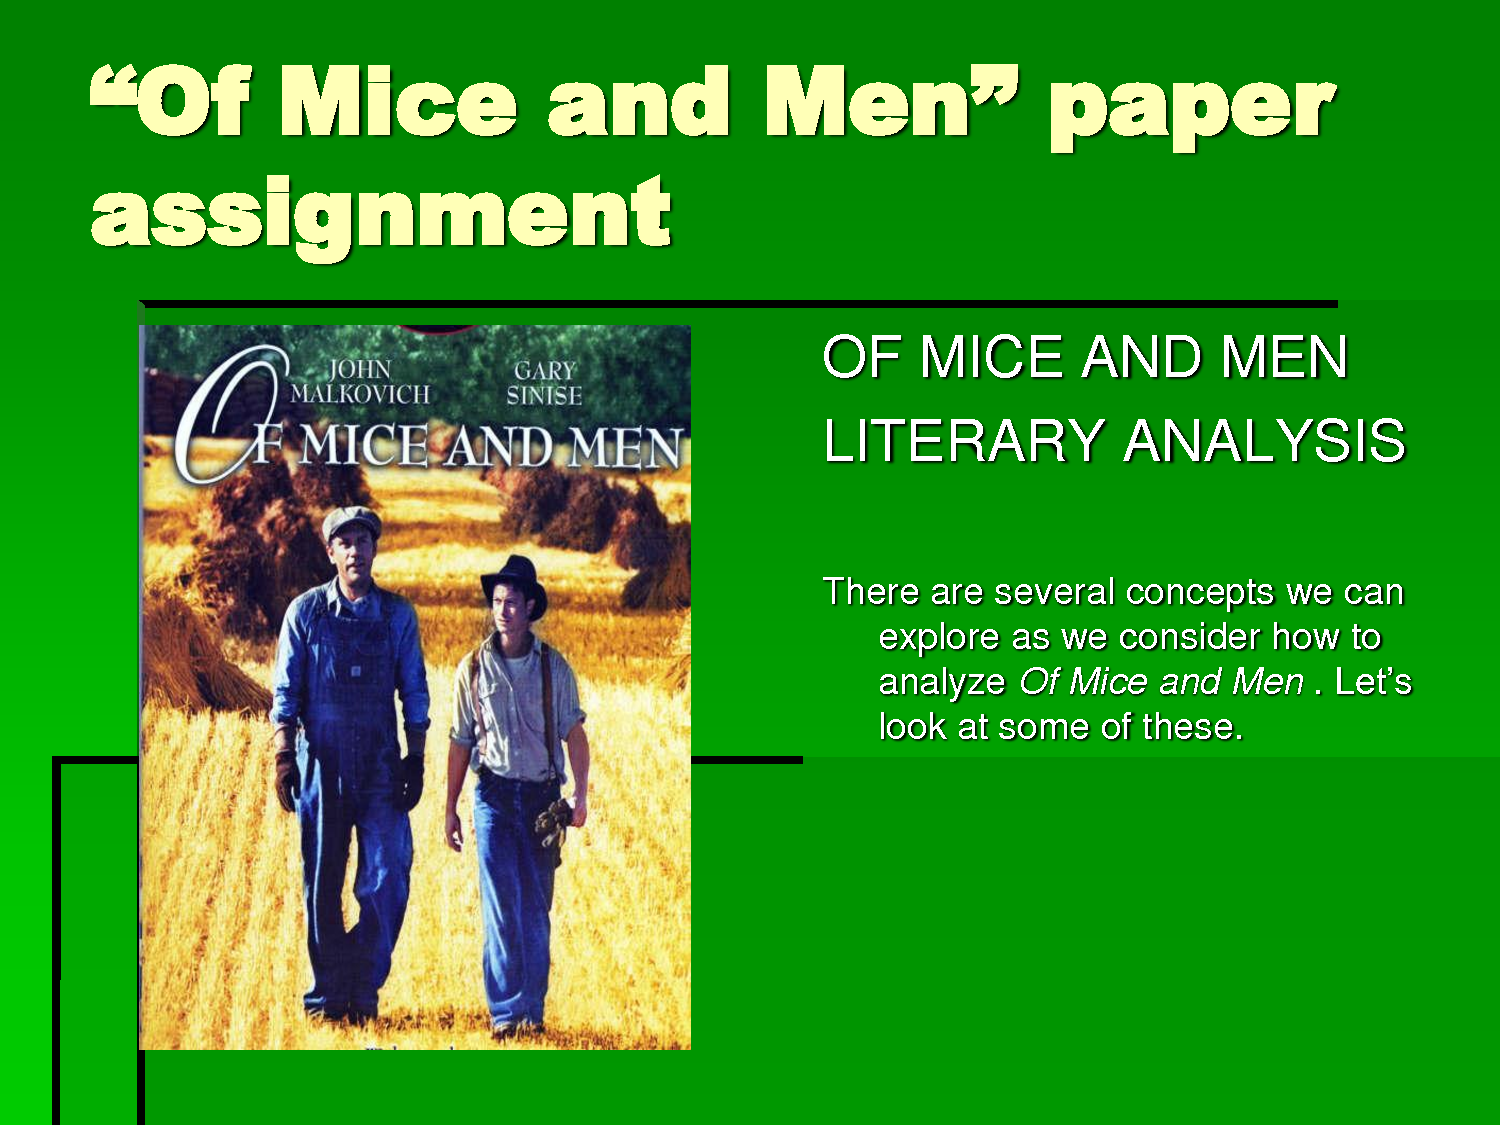 friendship quotes of mice and men book  friendship quotes of mice and men book